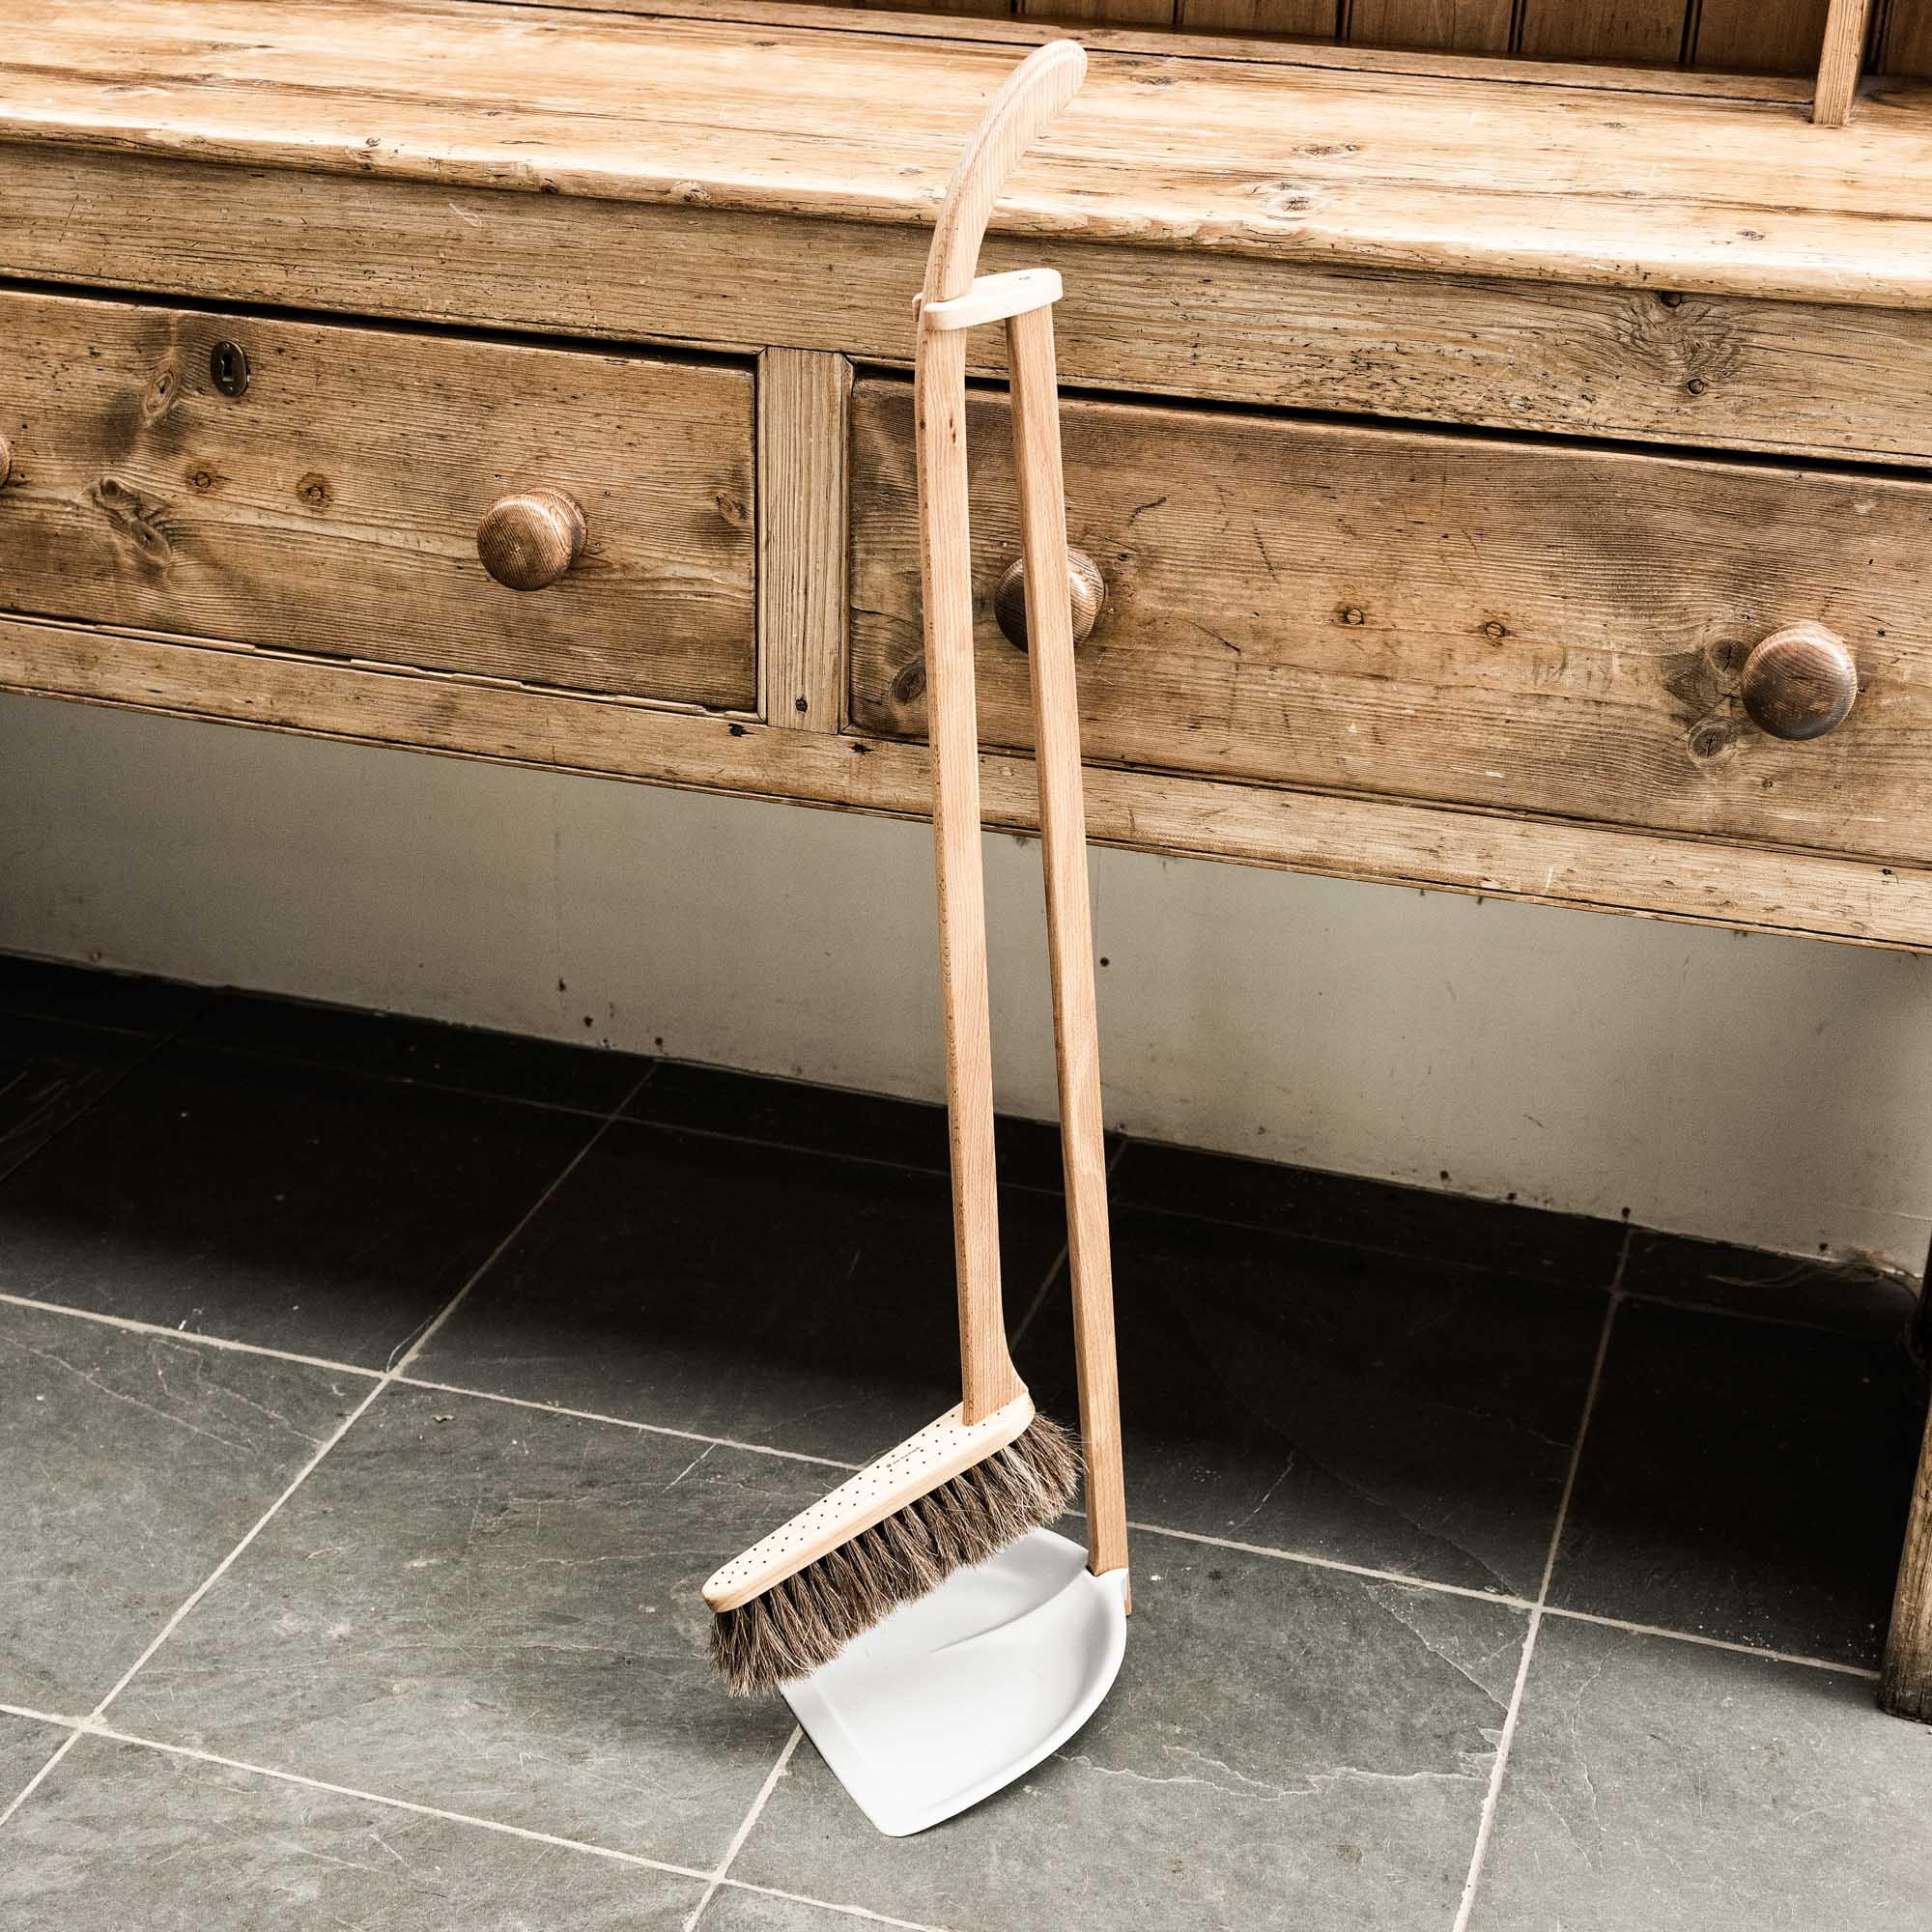 Buy Long Handled Dustpan Amp Brush House Amp Home Burford